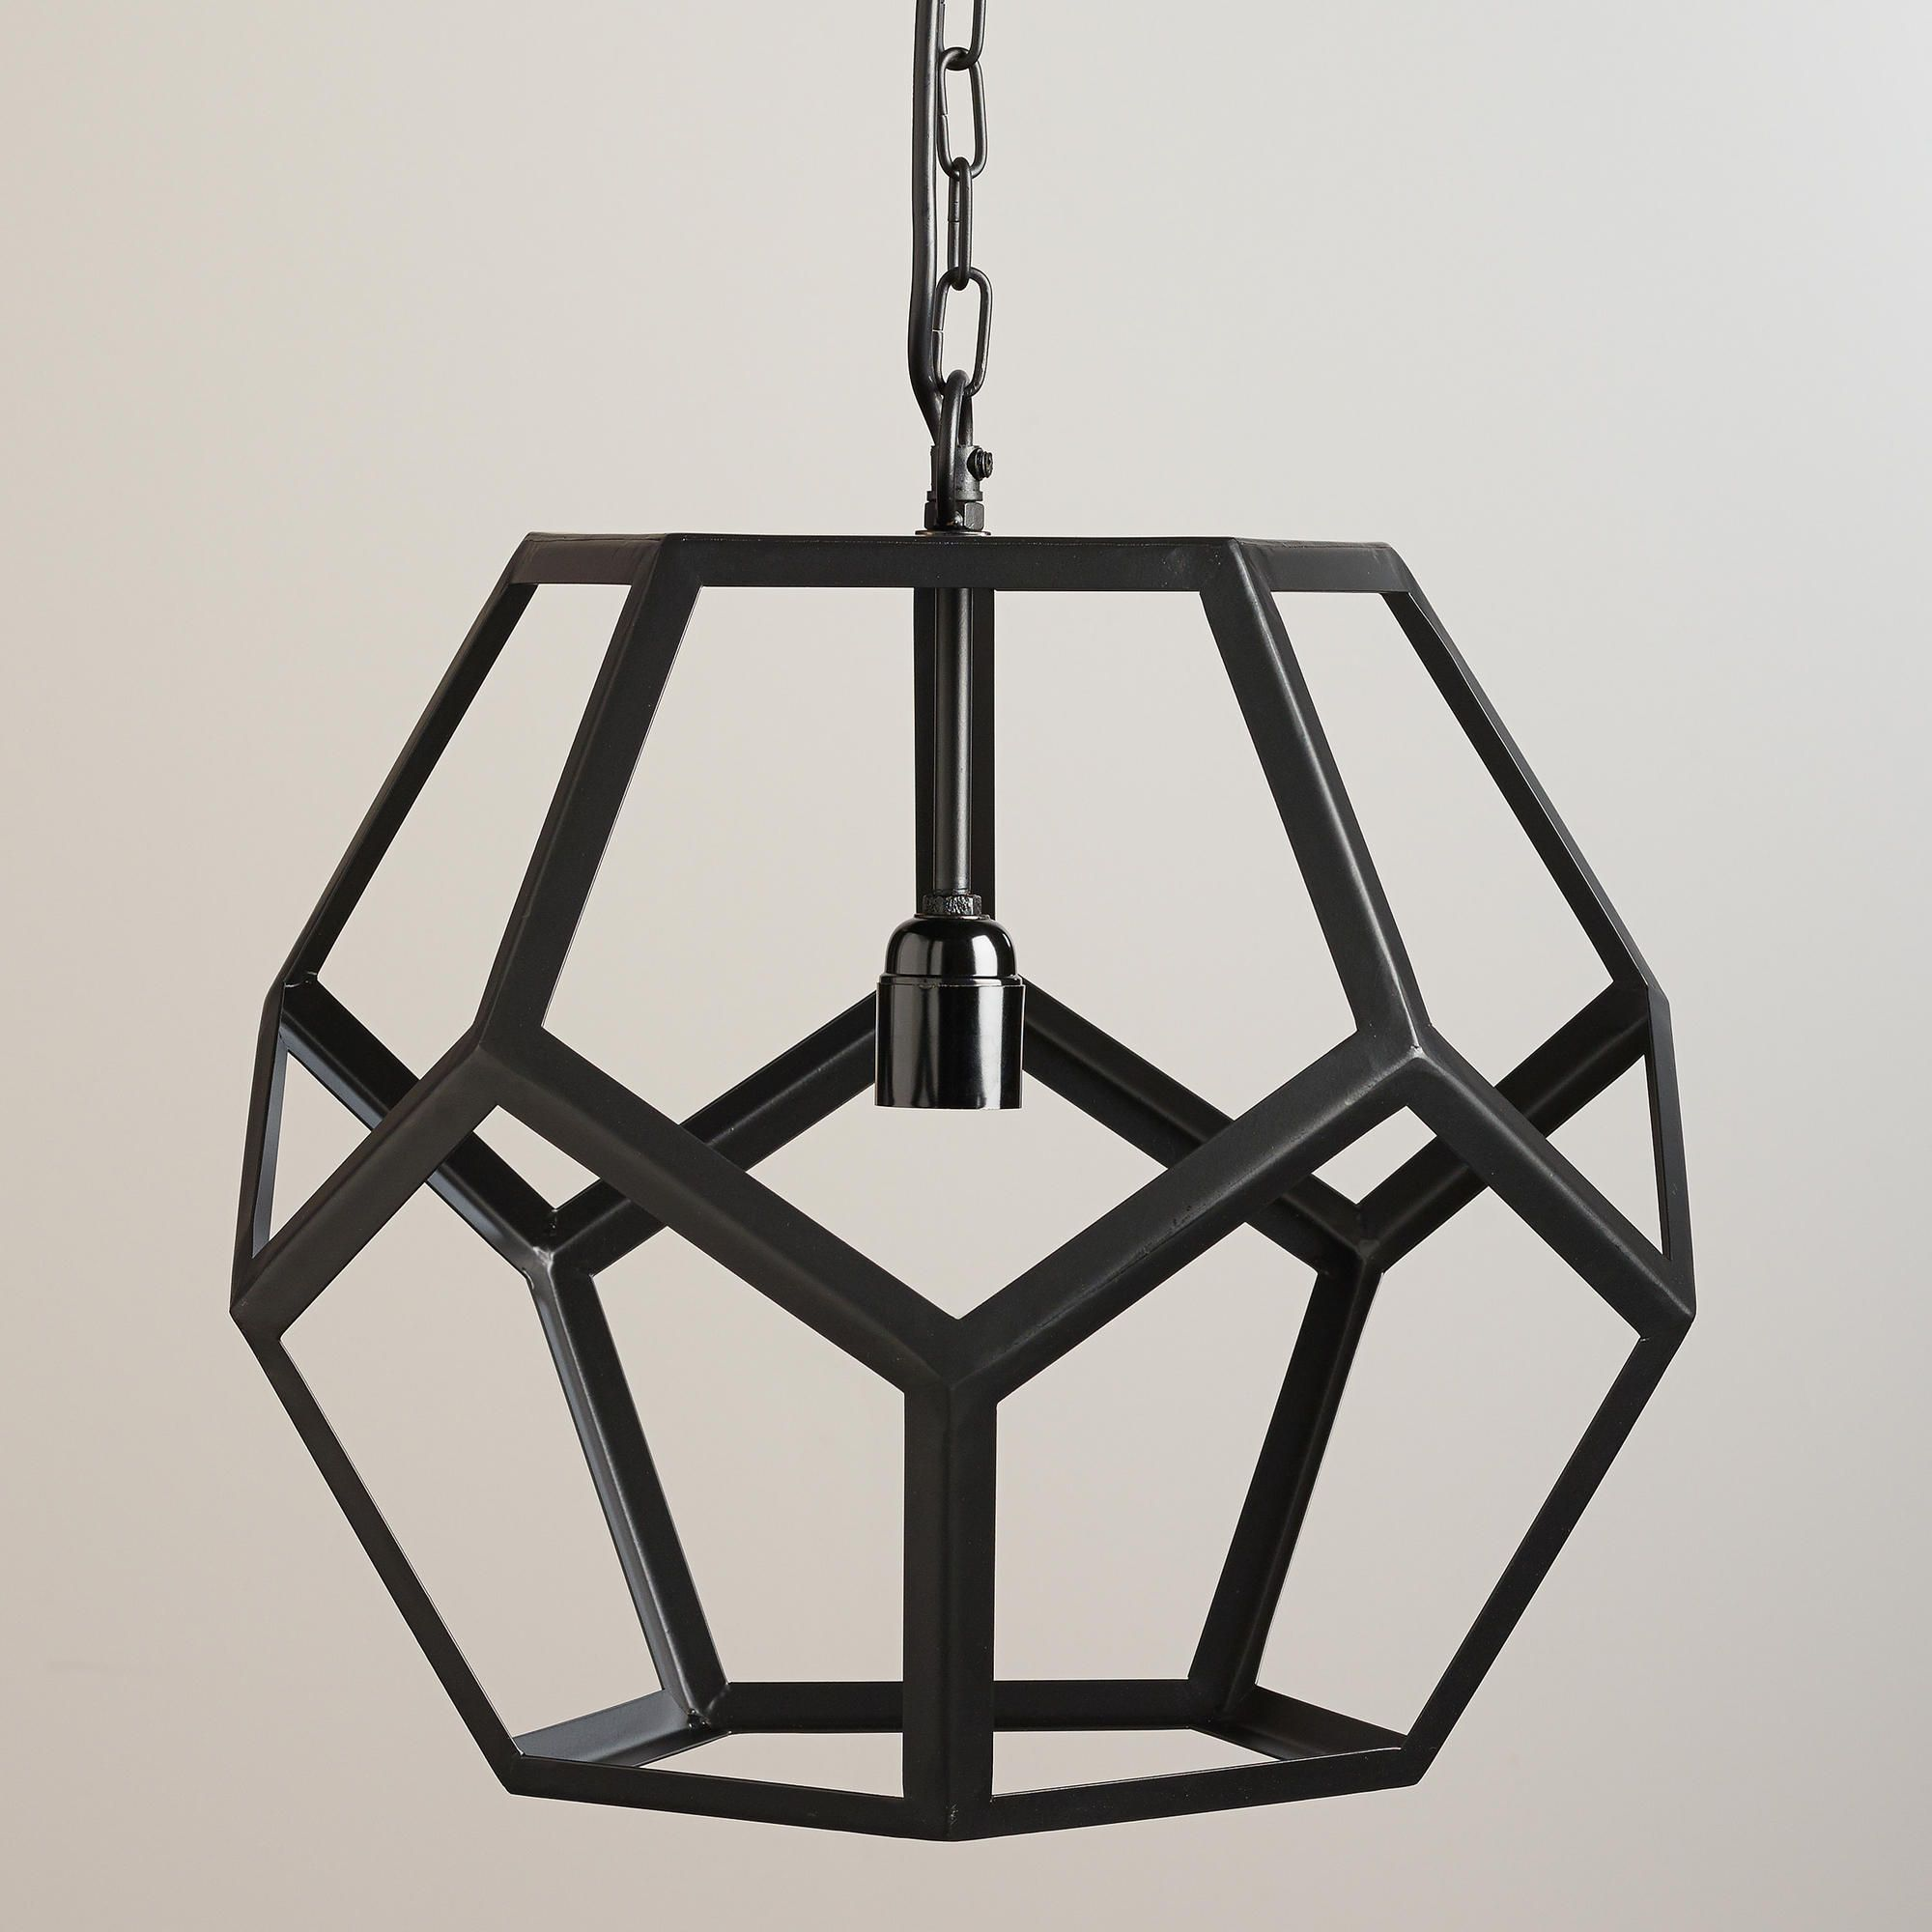 for the entryway to go with dining room light black metal hexagon pendant lamp world market. Black Bedroom Furniture Sets. Home Design Ideas